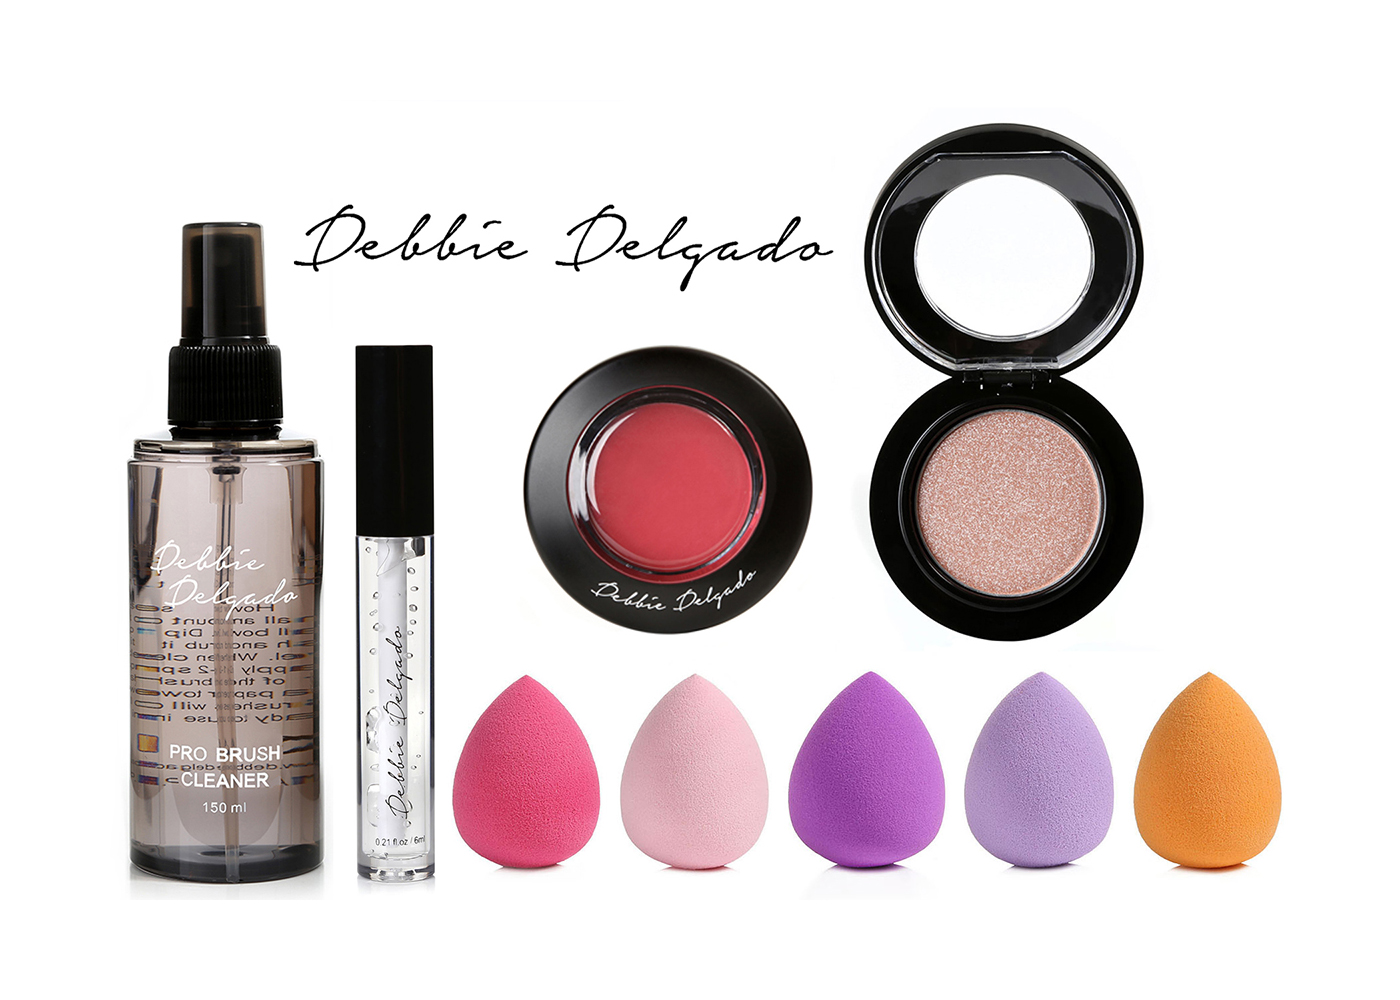 Debbie Delgado product group image